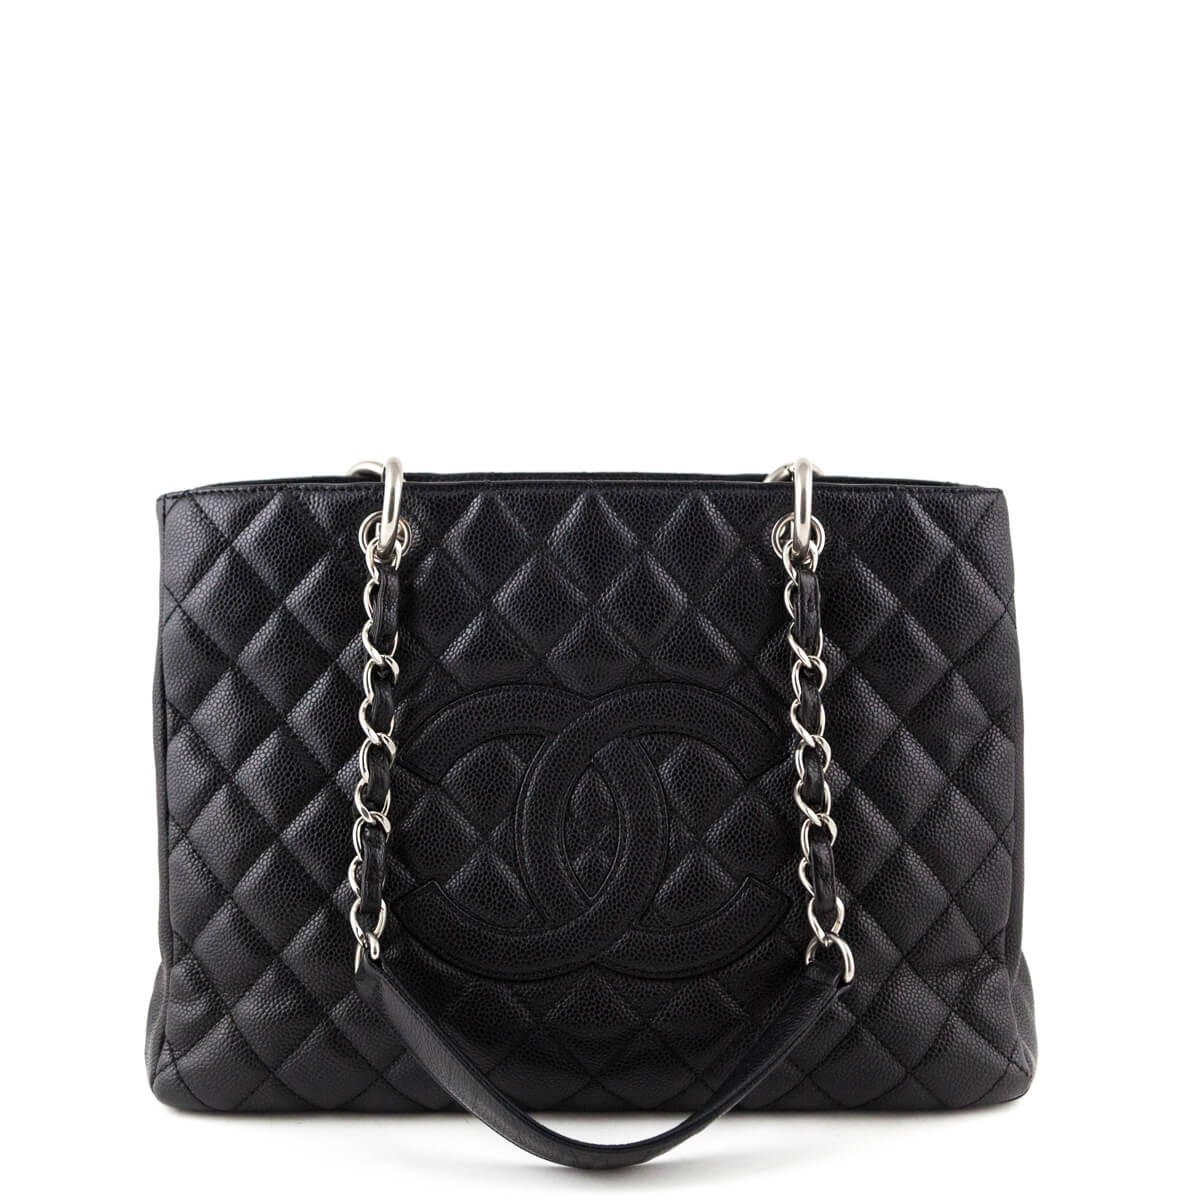 a34a827b37fa Chanel Black Caviar Grand Shopping Tote SHW - LOVE that BAG - Preowned  Authentic Designer Handbags ...